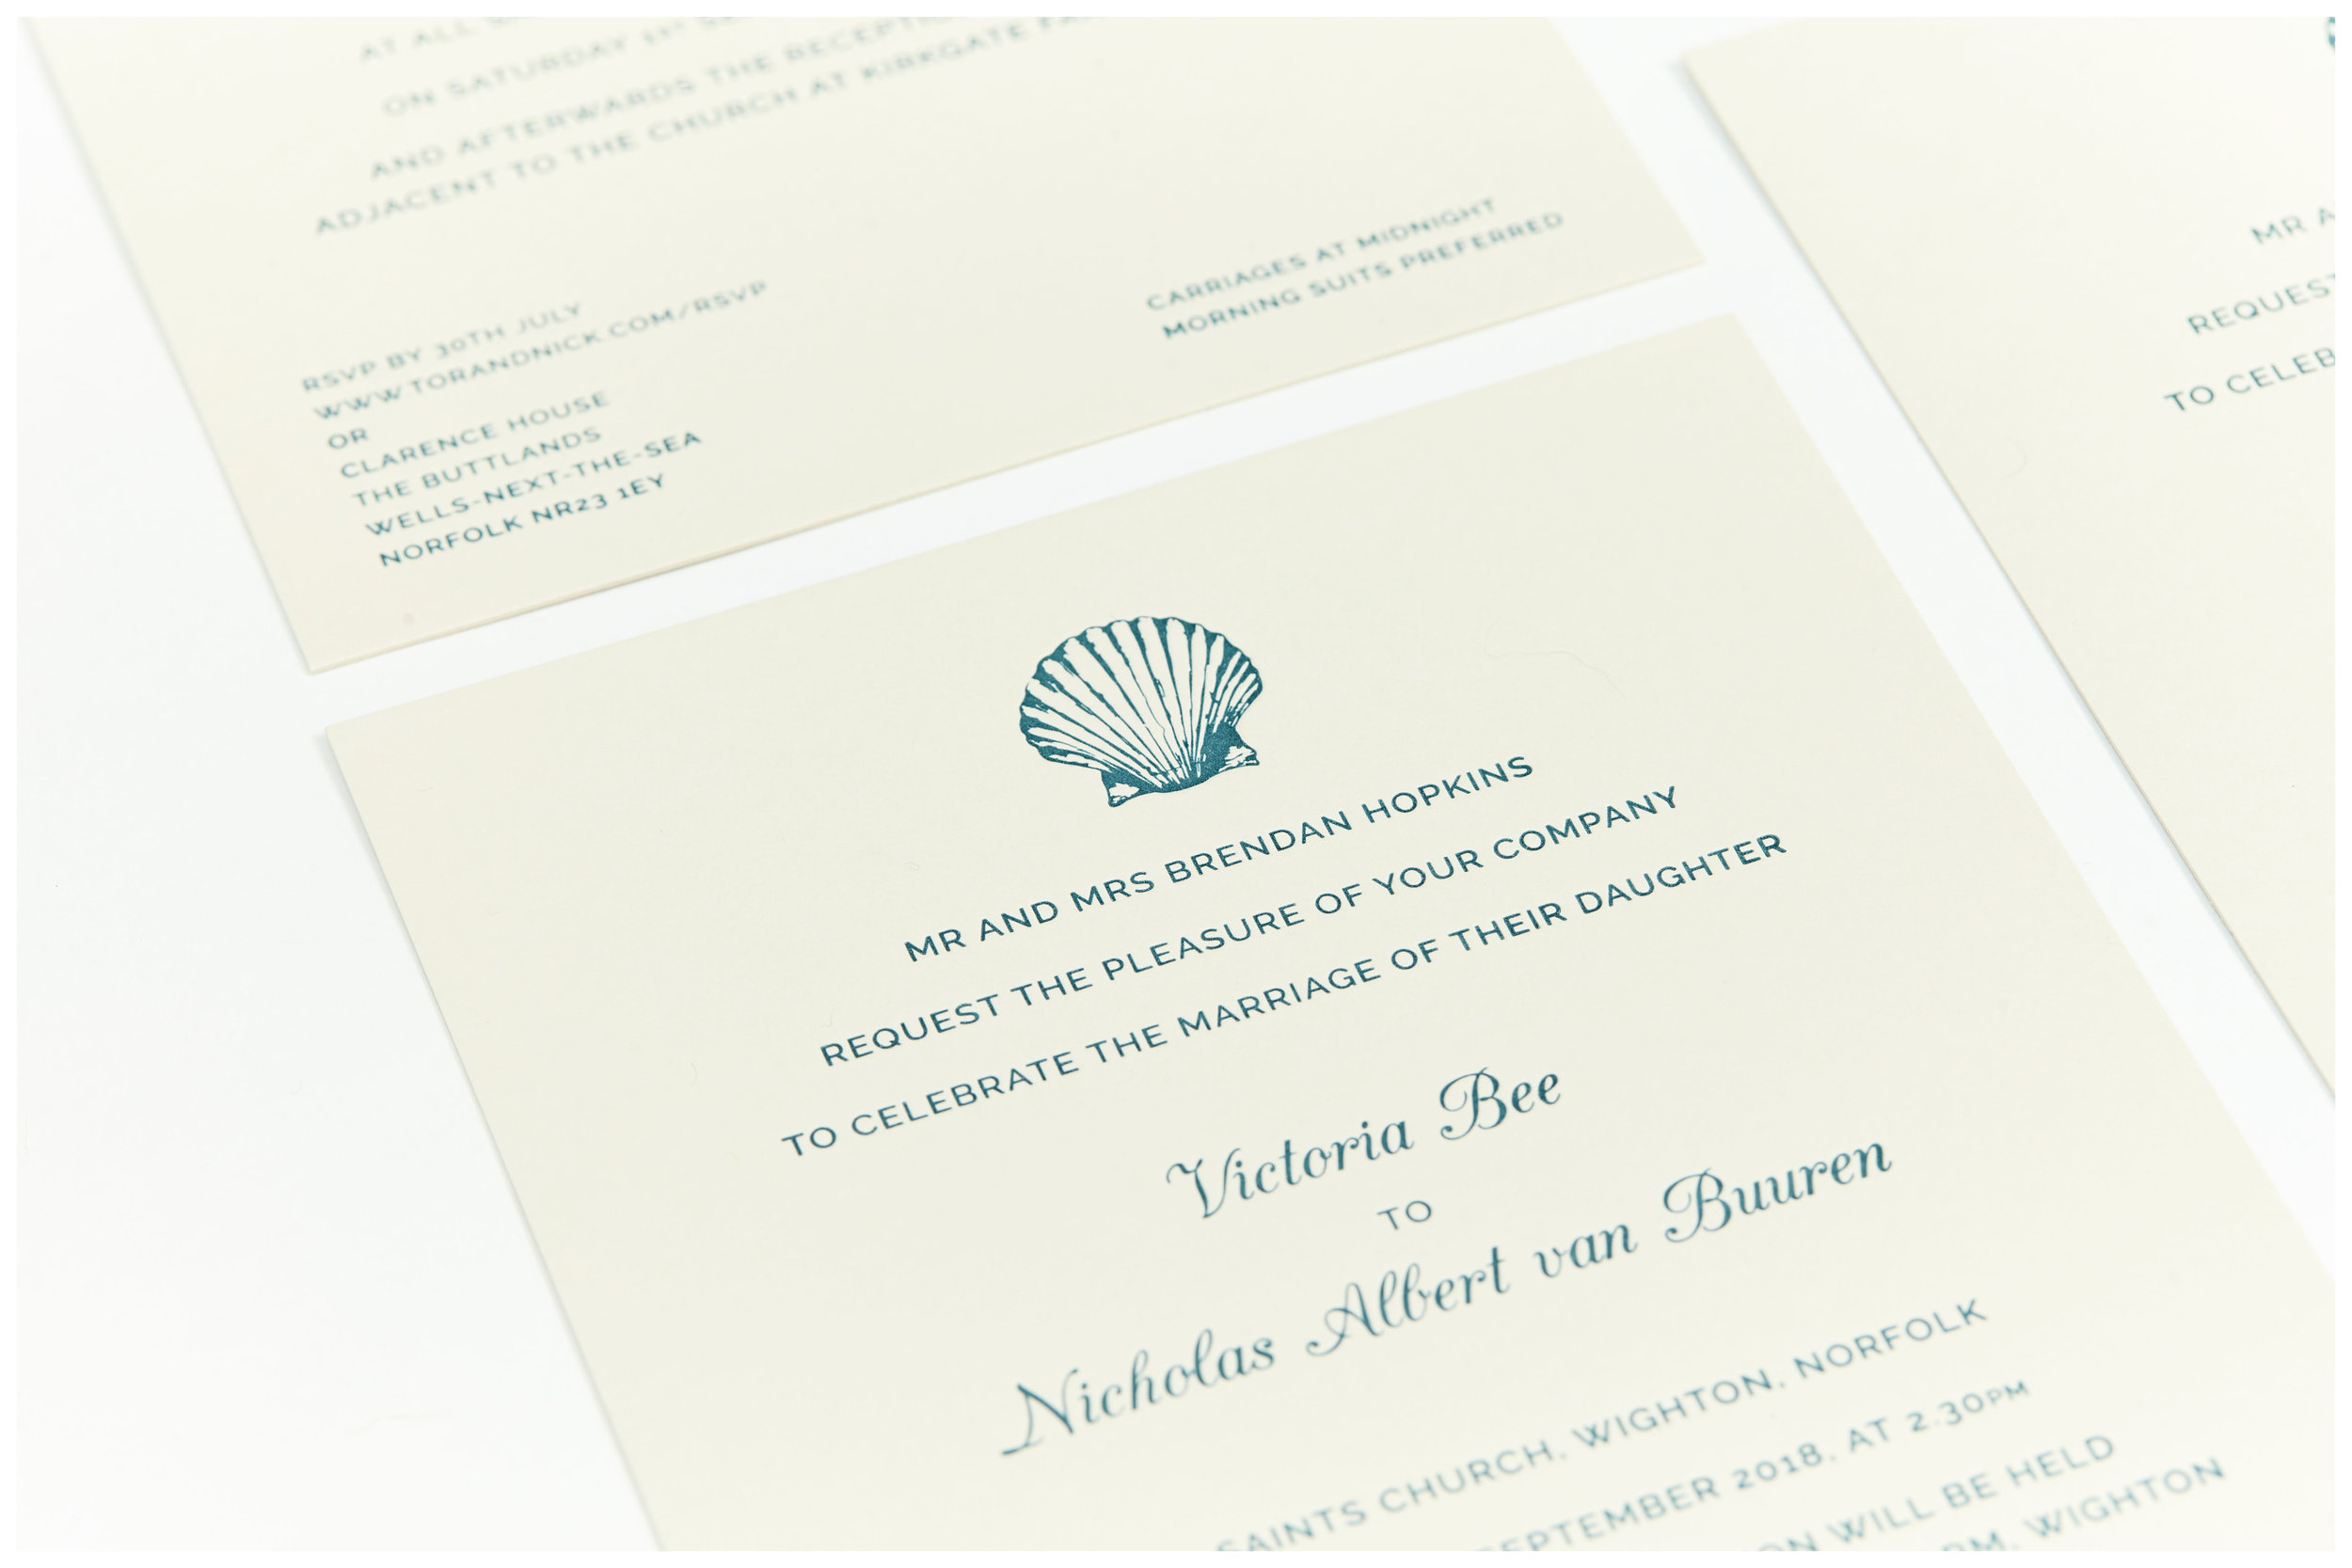 Event Stationery - Bespoke invitations, illustrations and event materials for your unique occasion